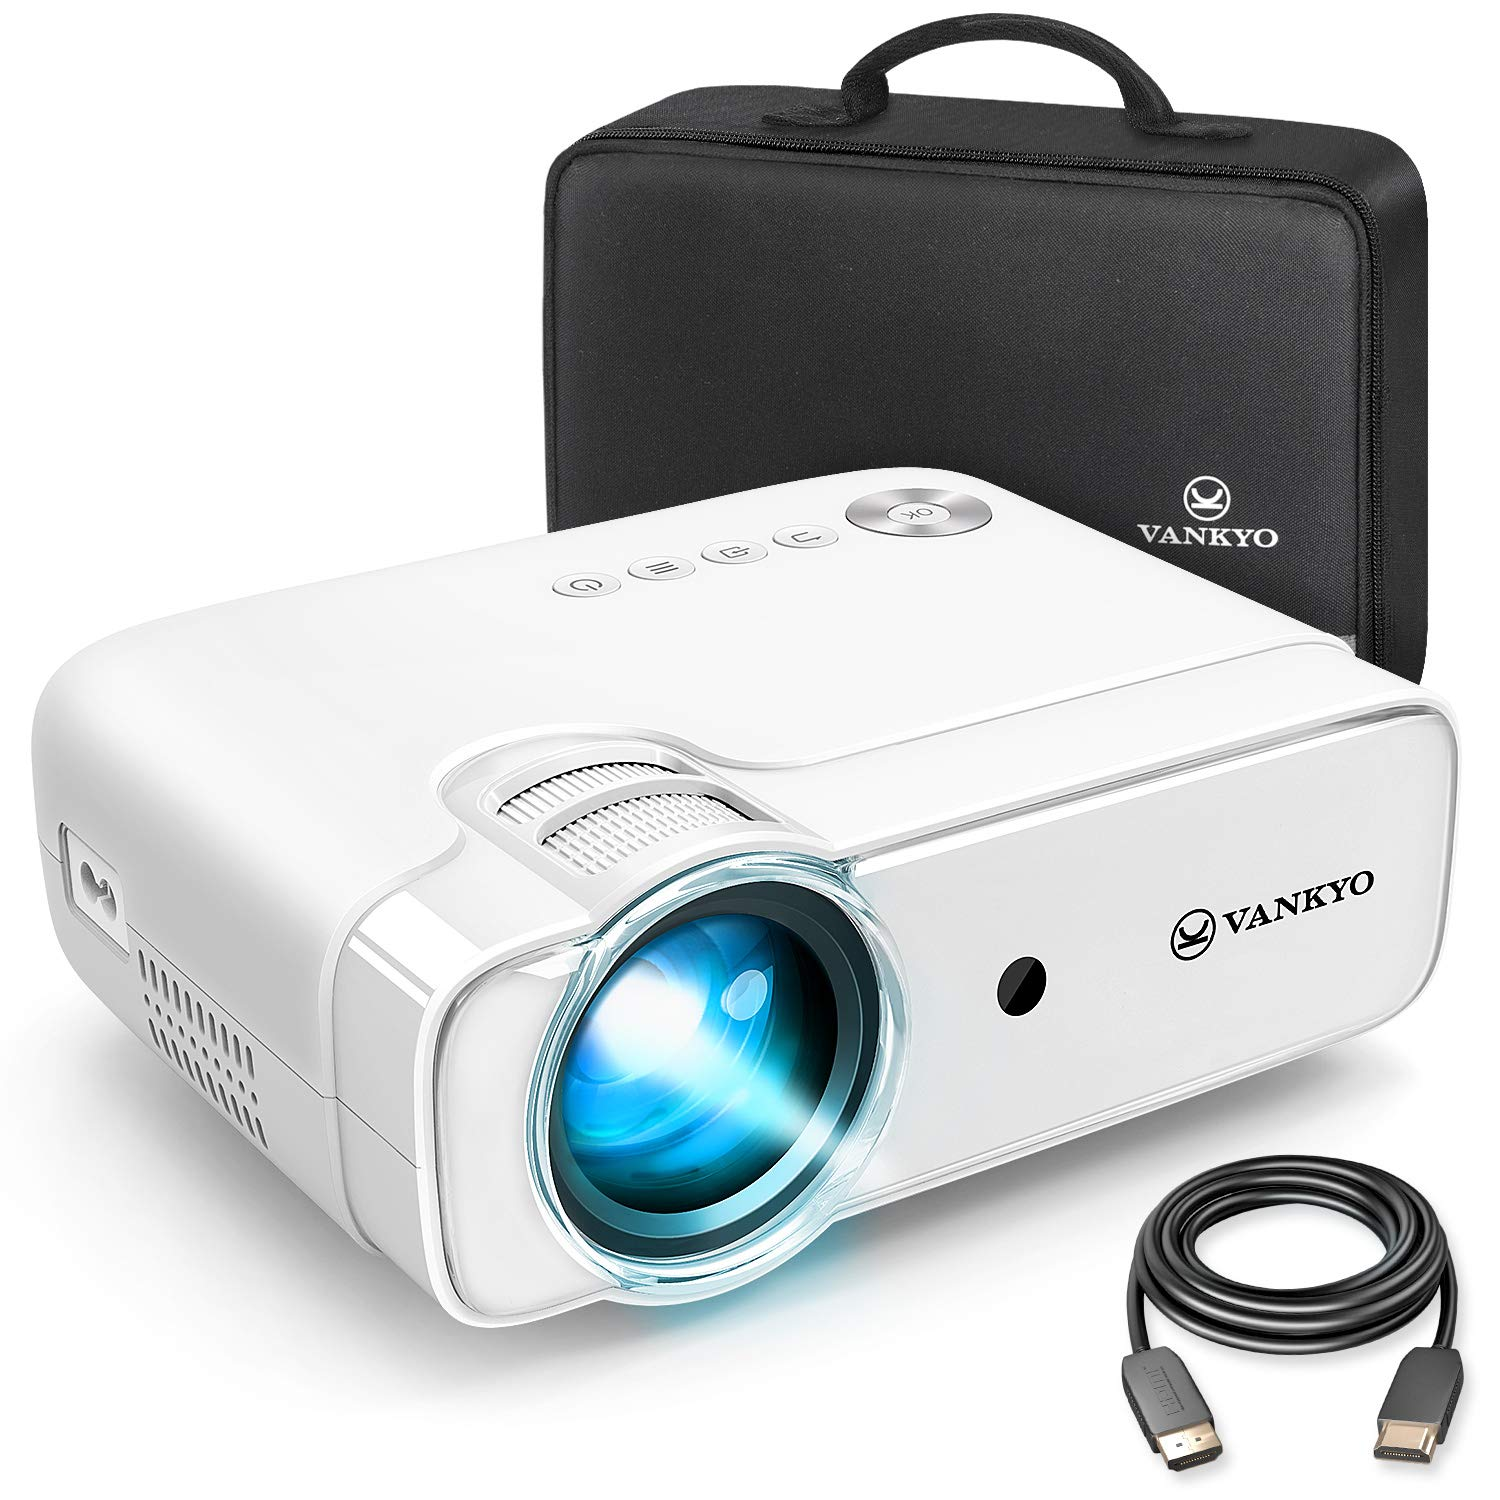 VANKYO Leisure 430 Mini Movie Projector, 3600 Lux Video Projector with 50,000 Hours LED Lamp Life, 236'' Display, Support 1080P, HiFi Built-in Speaker, Compatible with TV Stick, HDMI, SD, AV, VGA, USB by vankyo